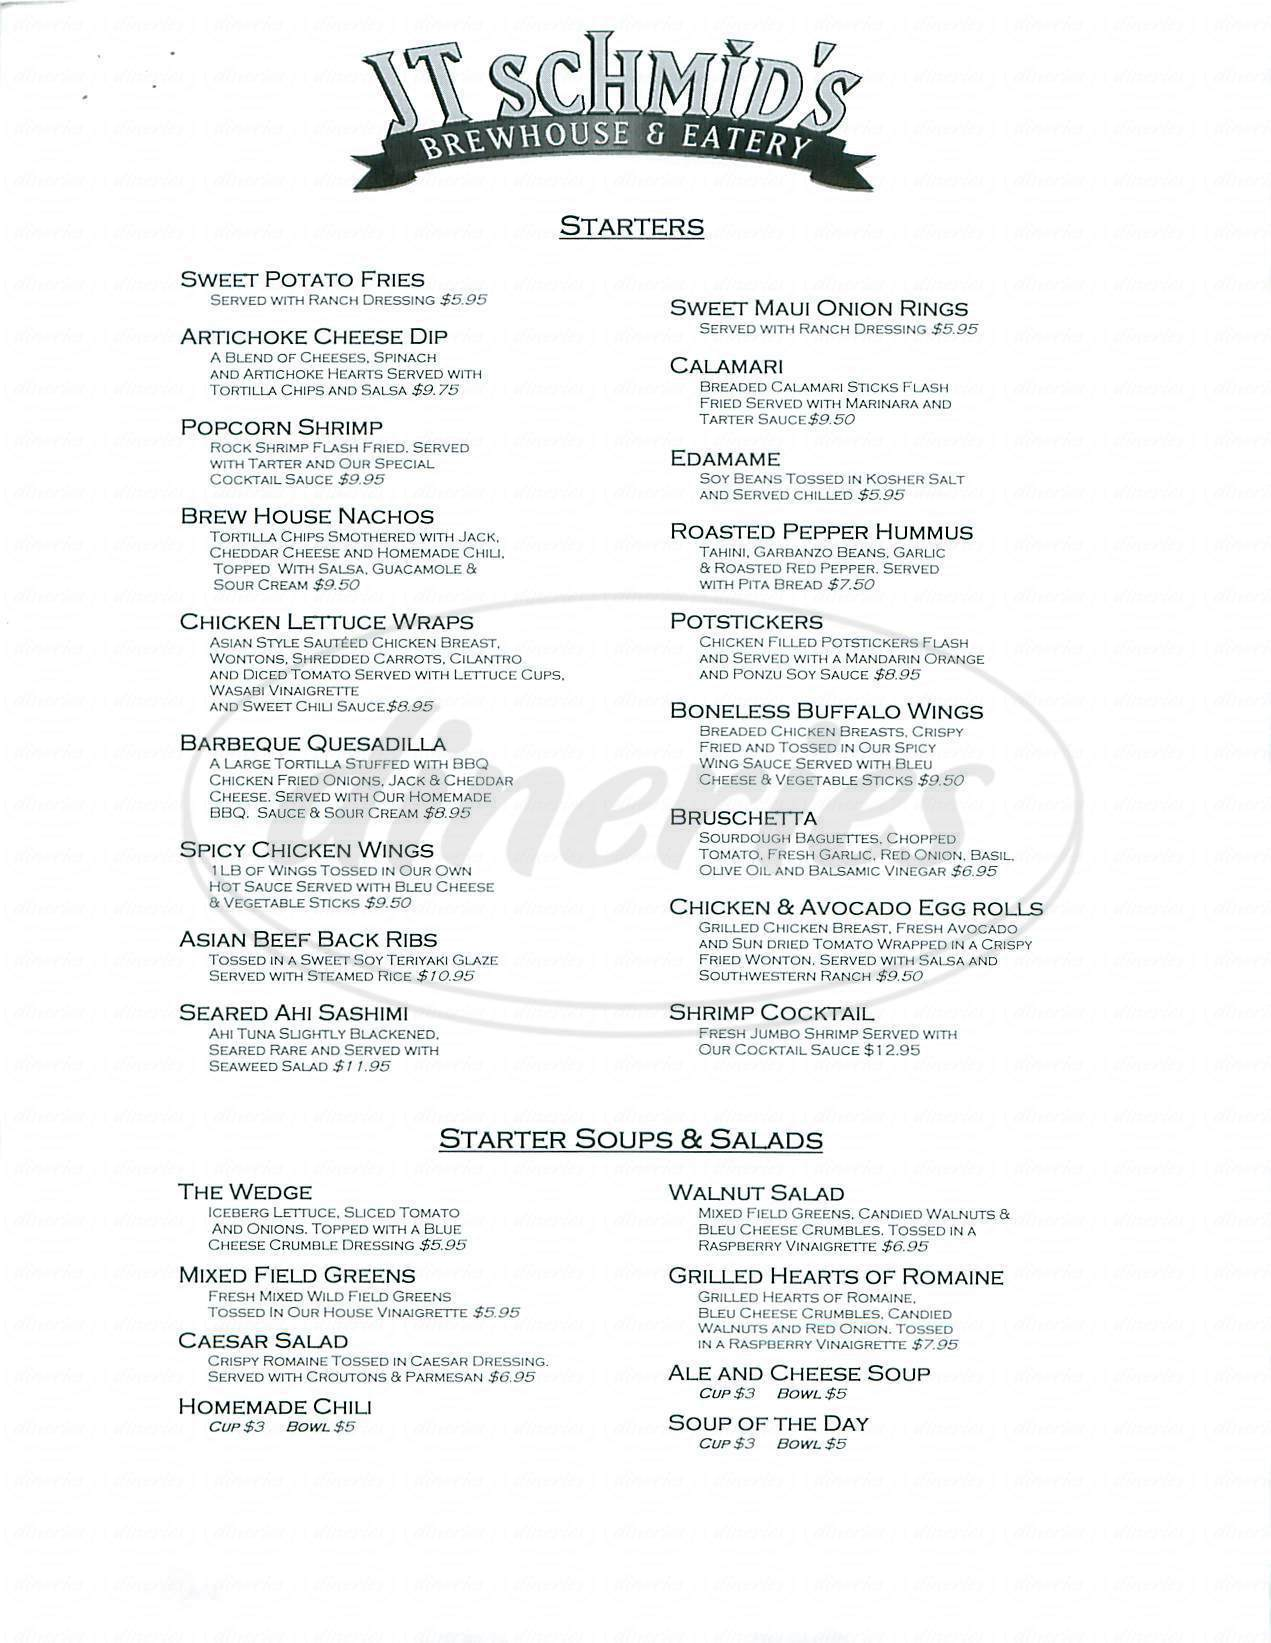 menu for JT Schmid's Restaurant & Brewery